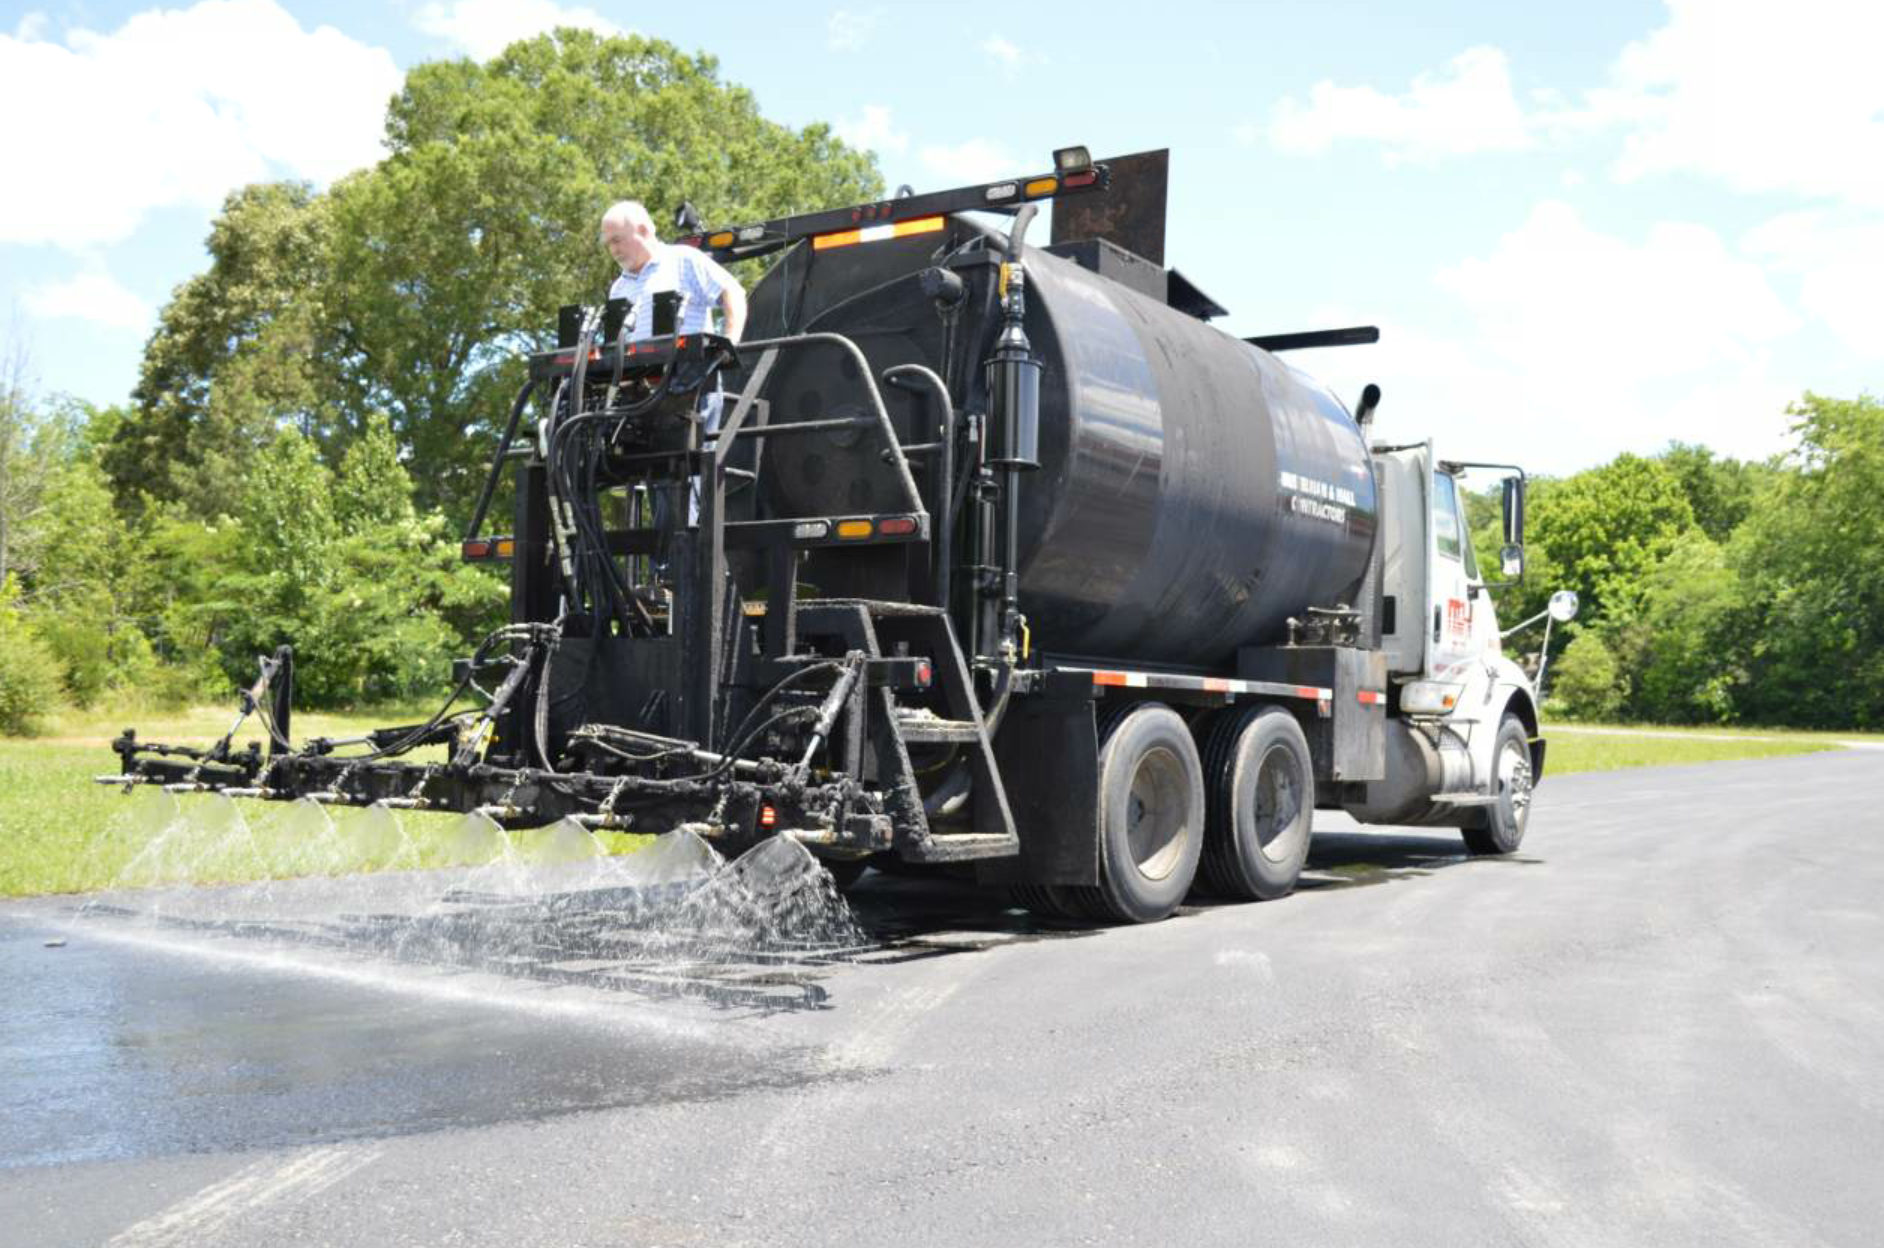 Neal Manufacturing has introduced its Generation IV pumps for retrofitting asphalt trucks.